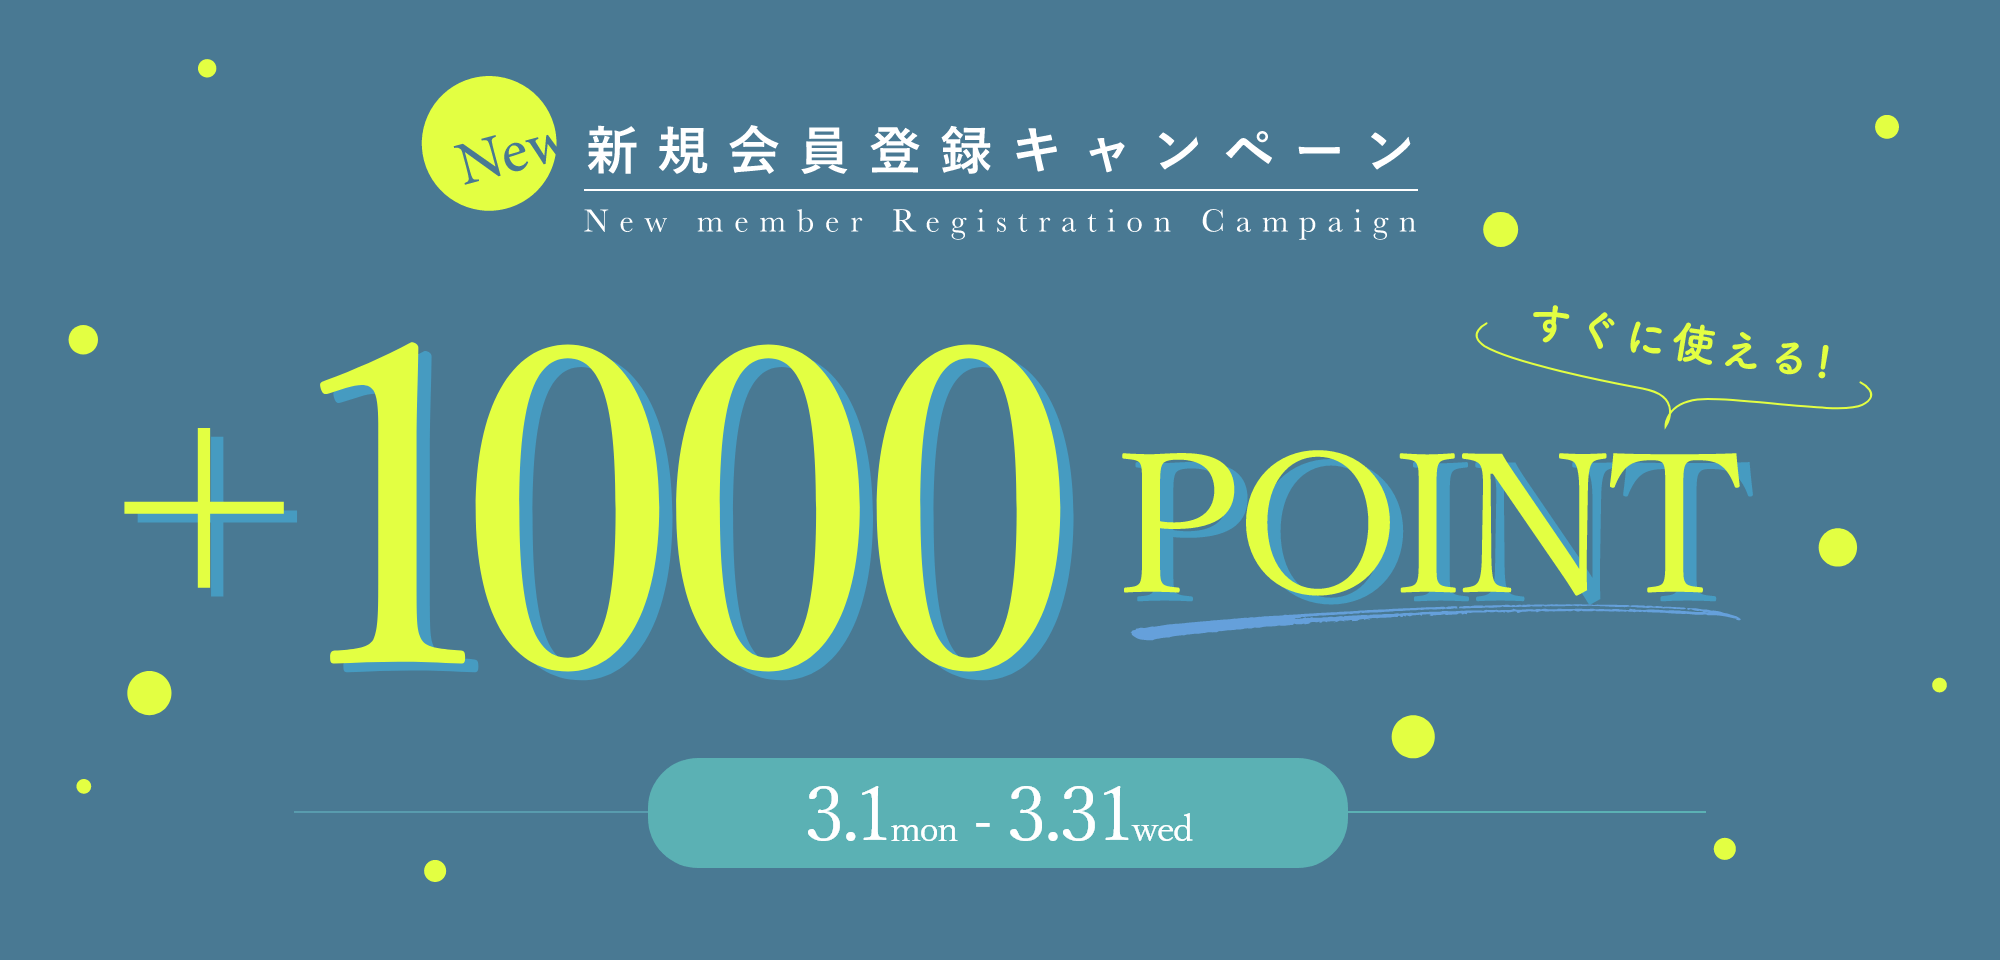 New 新規会員登録キャンペーン New member Registration Campaign +1000POINT すぐに使える! 10.8thu - 10.31sat